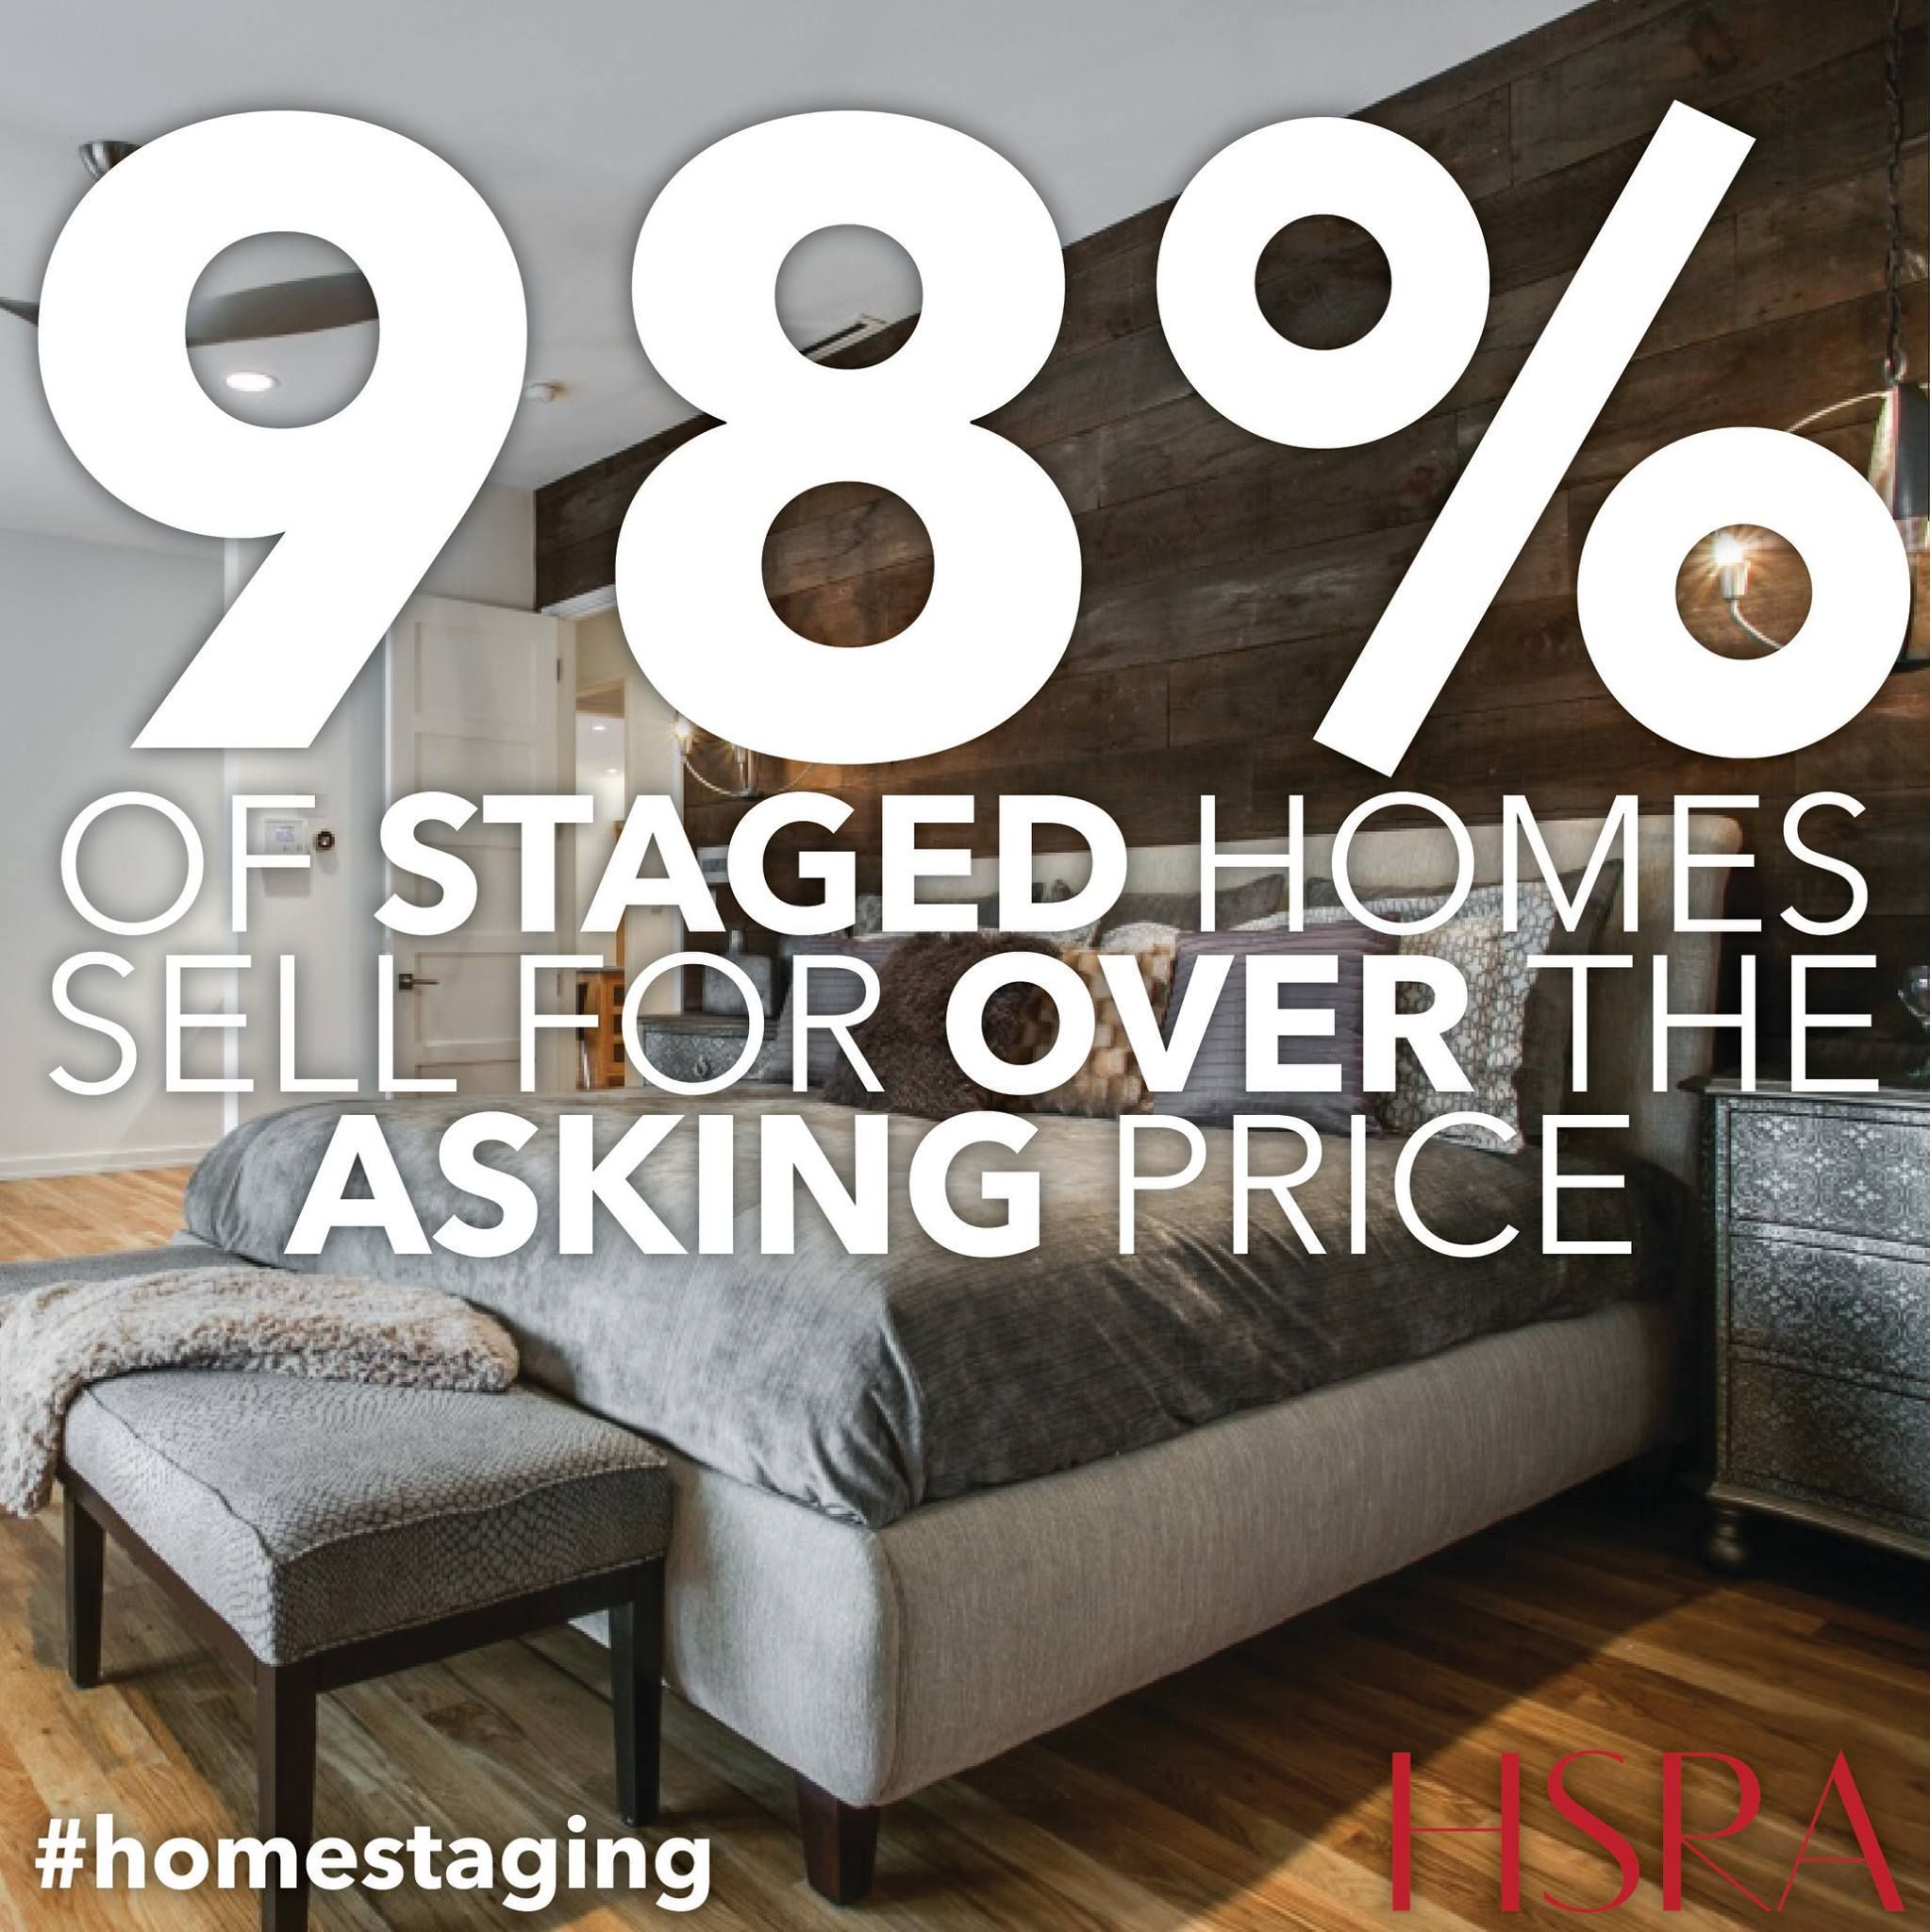 Home Staging Quotes: Home Staging Stats Www.myhsra.com